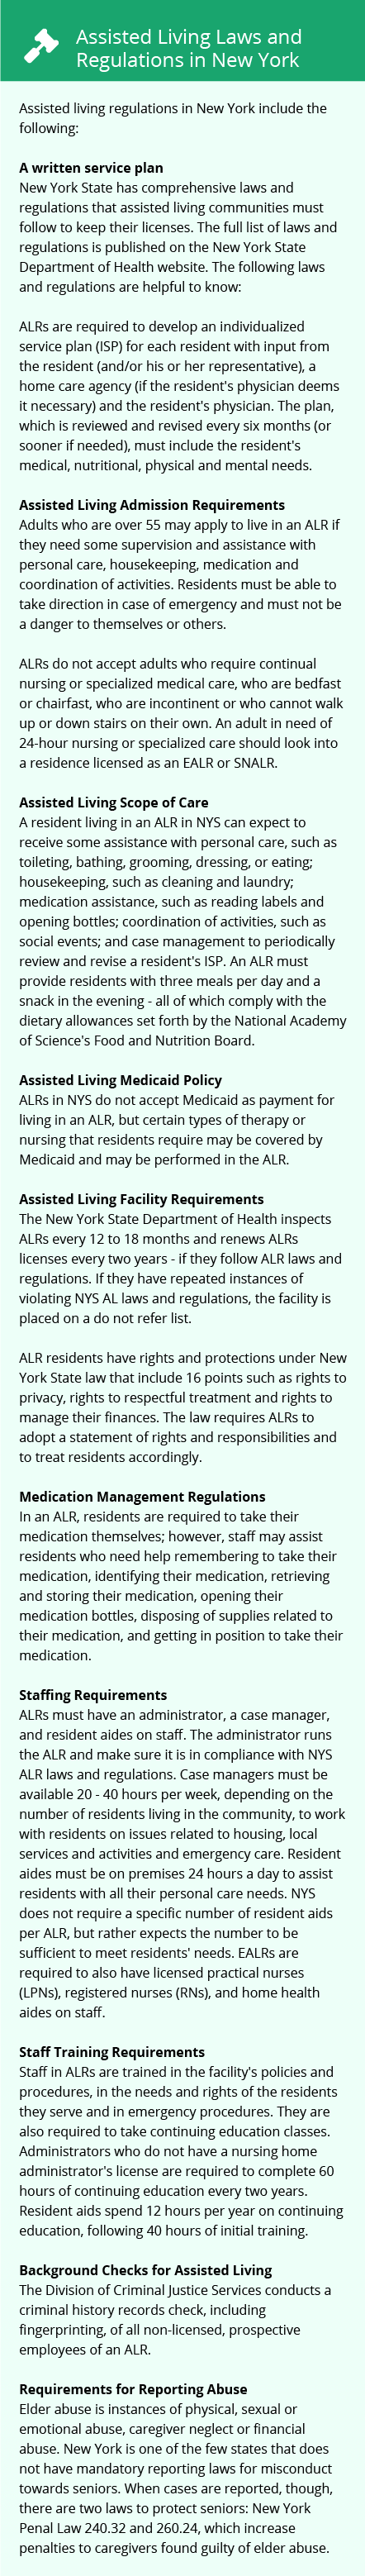 Laws and Regulations in New York